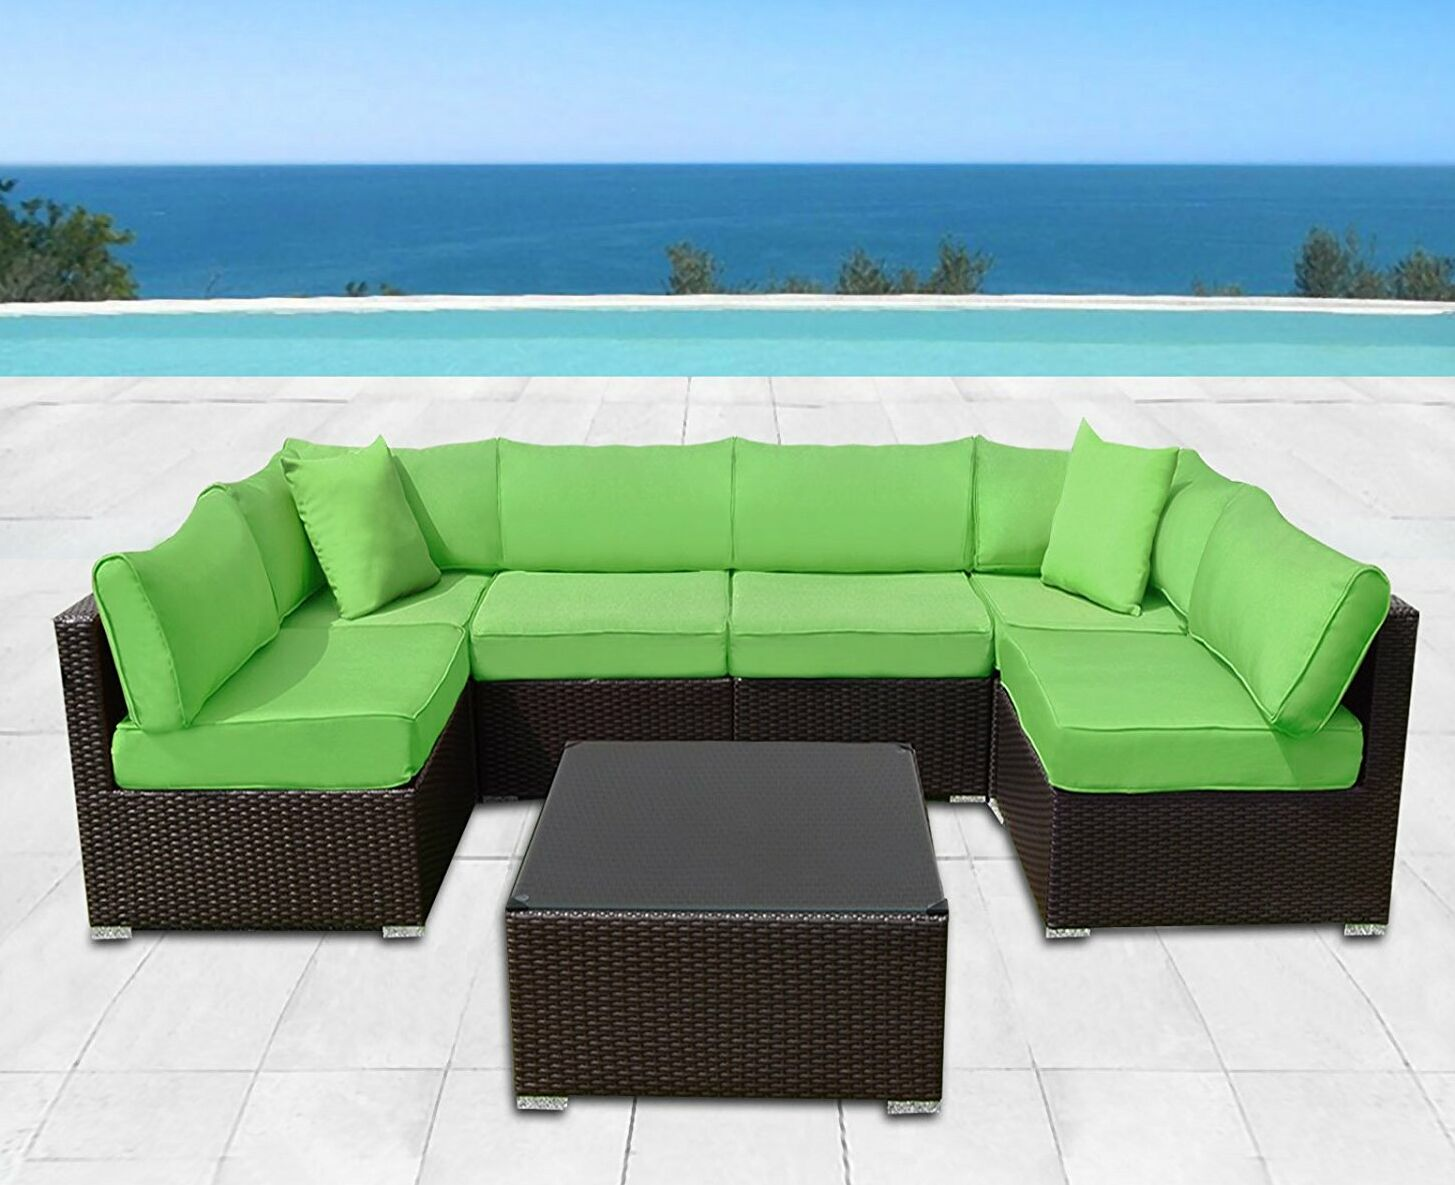 Ilebo 7 Piece Rattan Sectional Set with Cushions Fabric: Apple Green